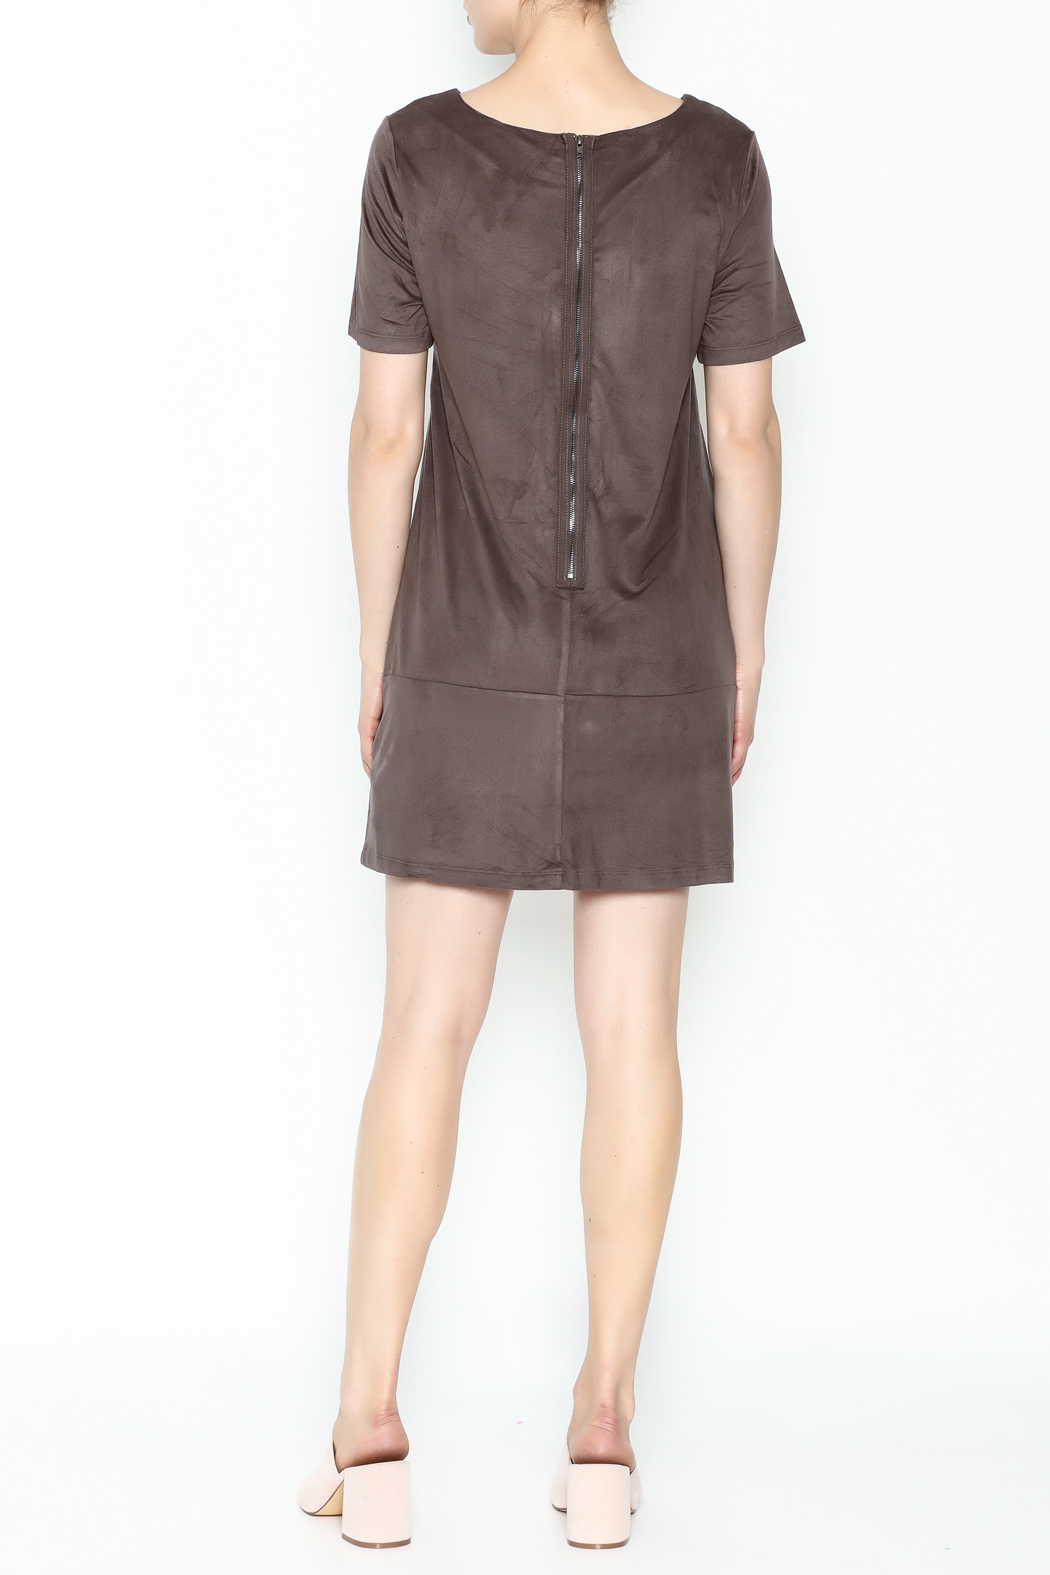 Bishop + Young Ivy Suede Shift Dress - Back Cropped Image